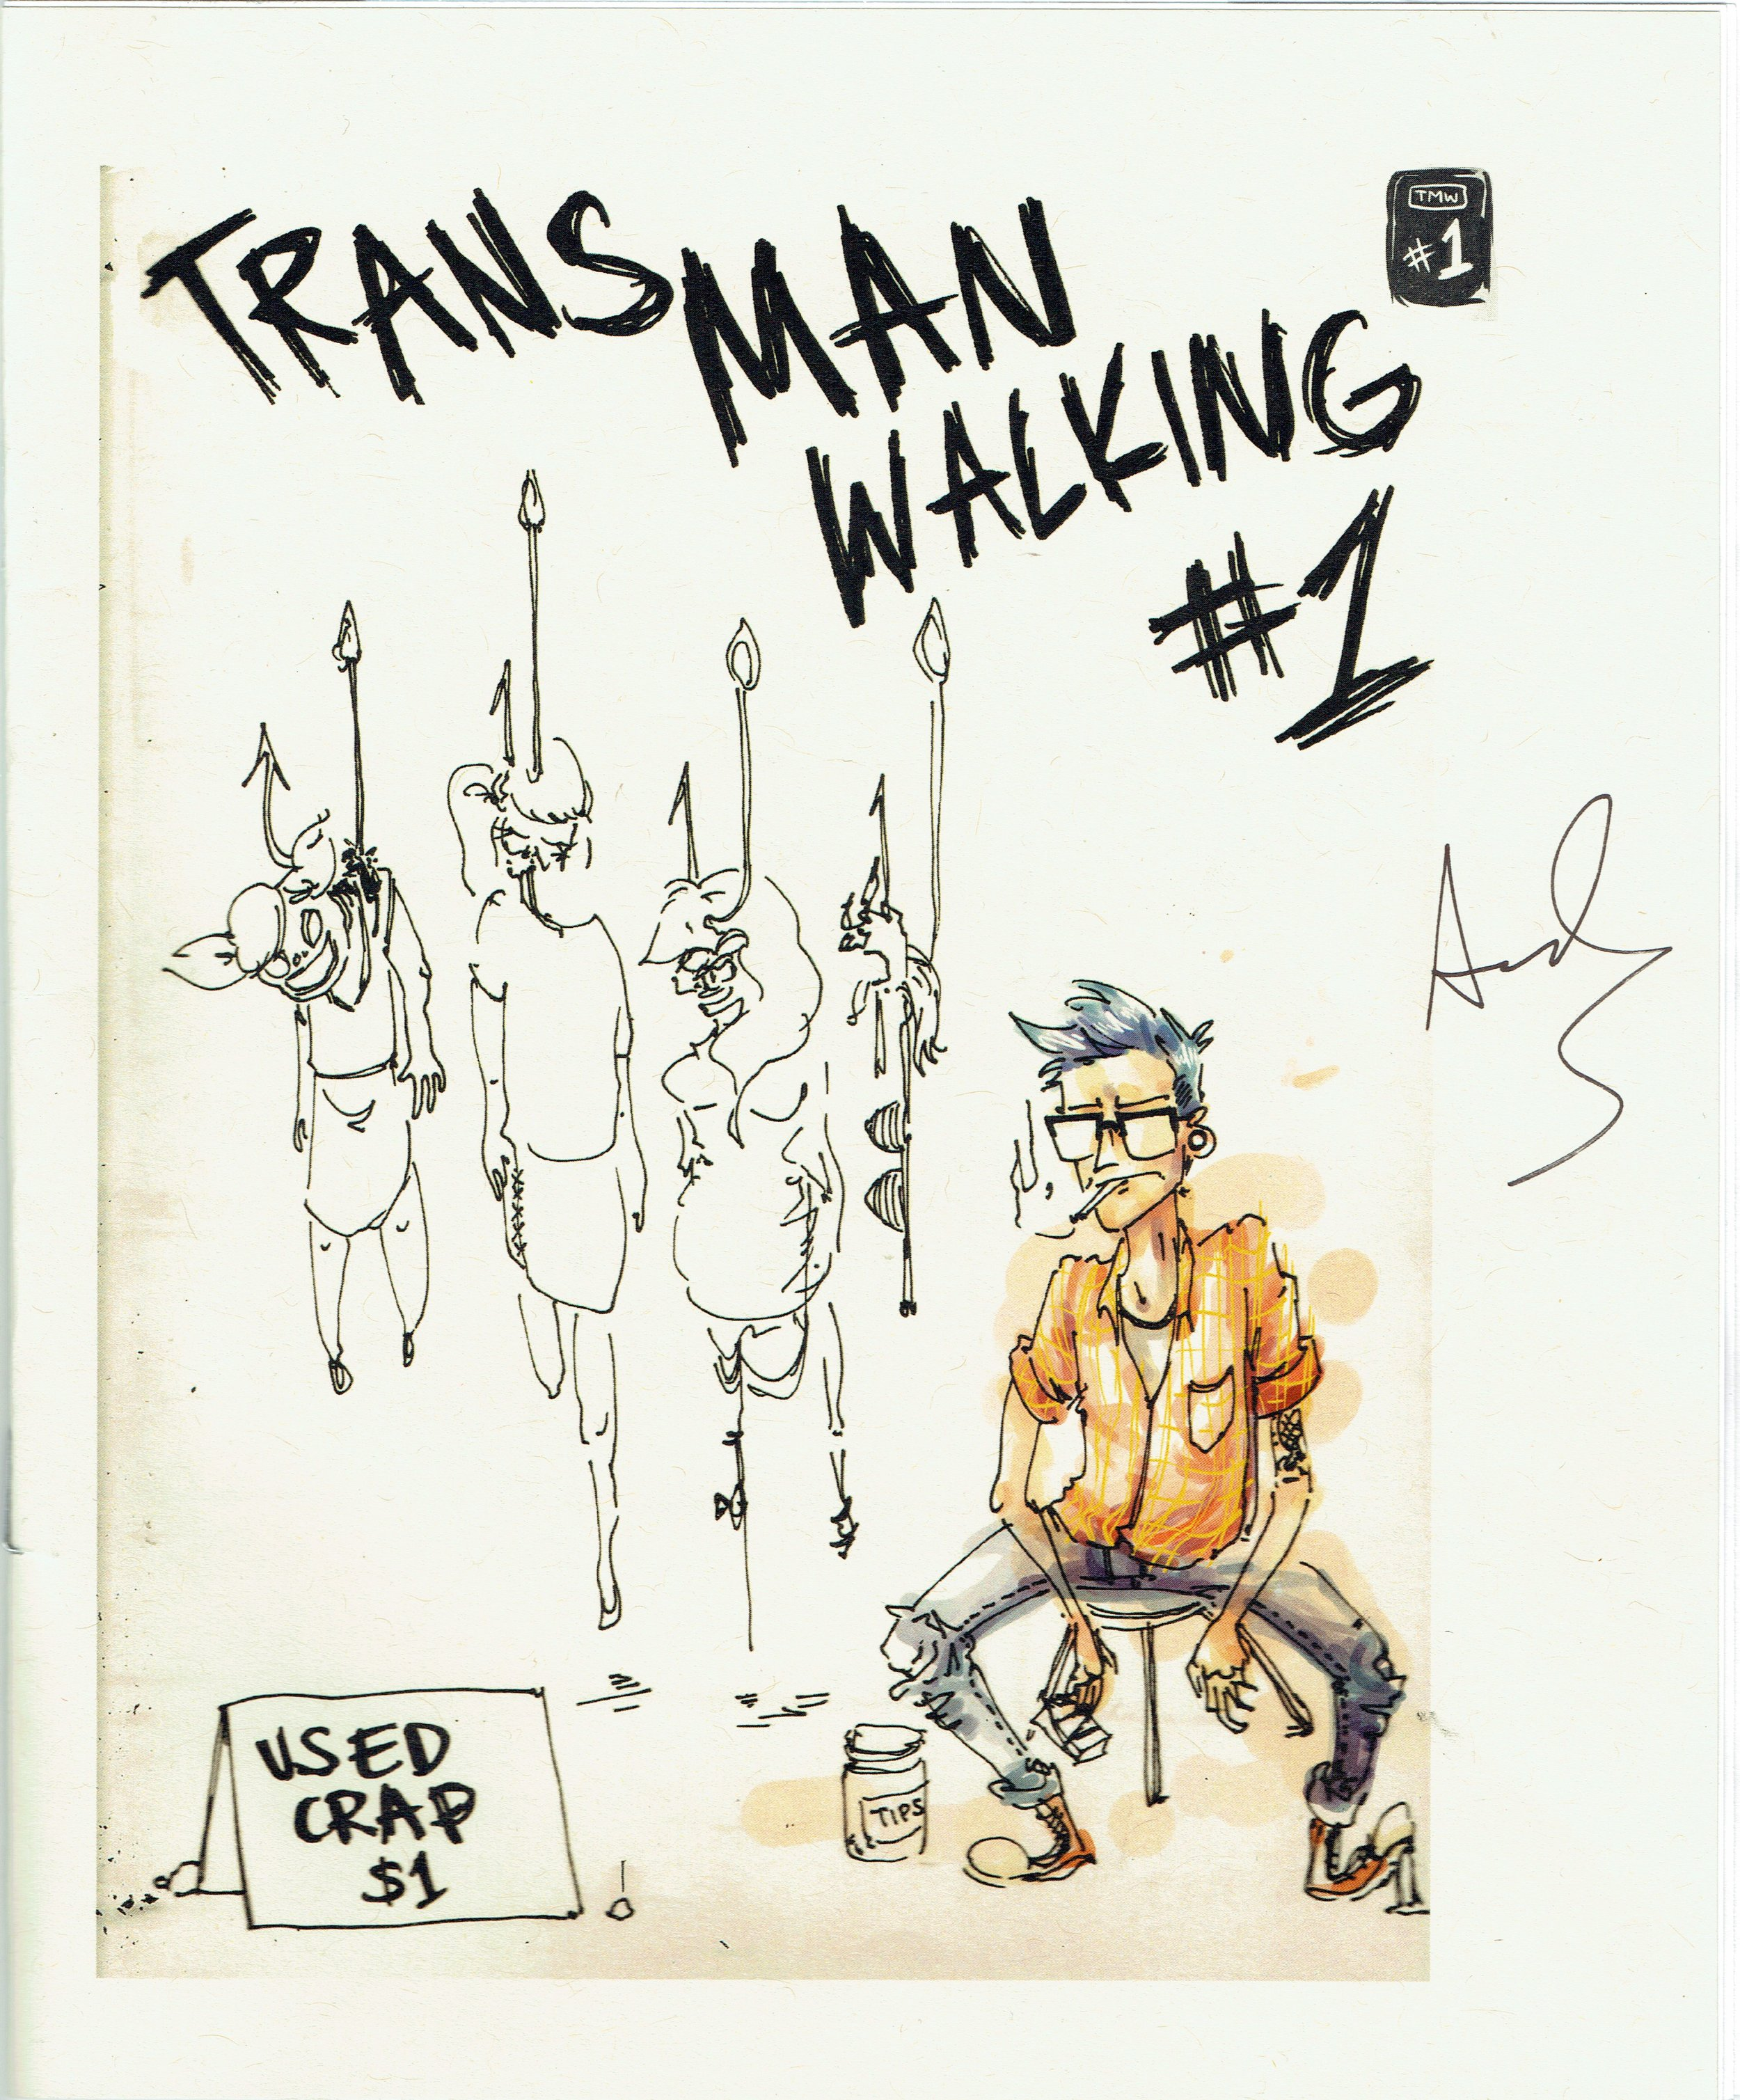 Trans Man Walking #1 from Andi Santagata at DINK 2017.